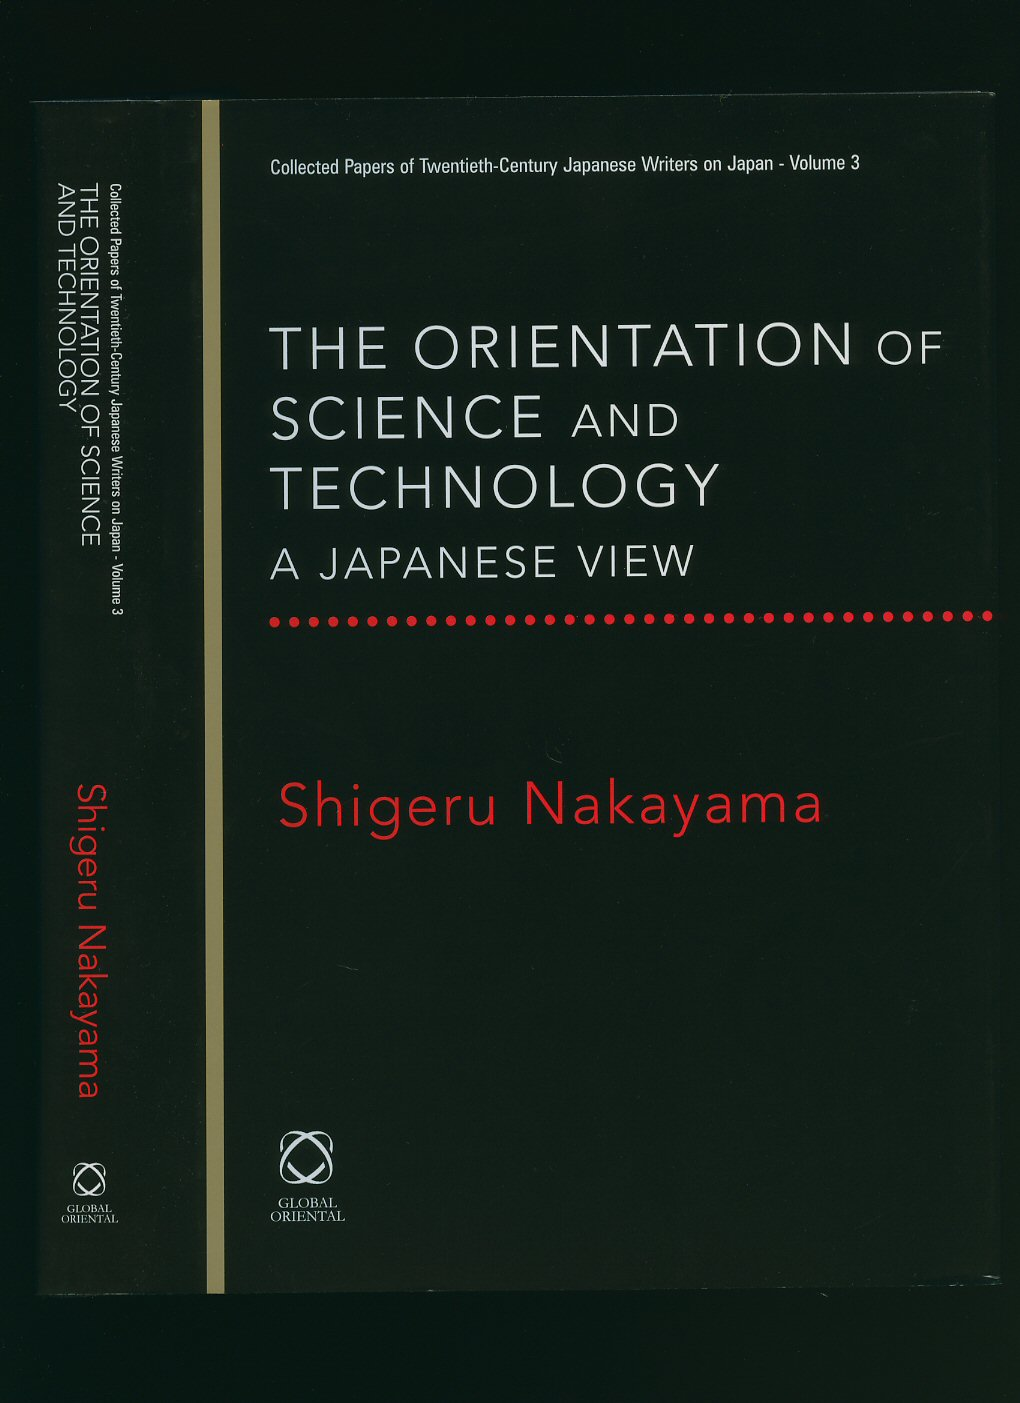 NAKAYAMA, SHIGERU [FOREWORD BY TESSA MORRIS-SUZUKI] - The Orientation of Science and Technology; A Japanese View [Collected Papers of Twentieth Century Japanese Writers on Japan Volume 3]